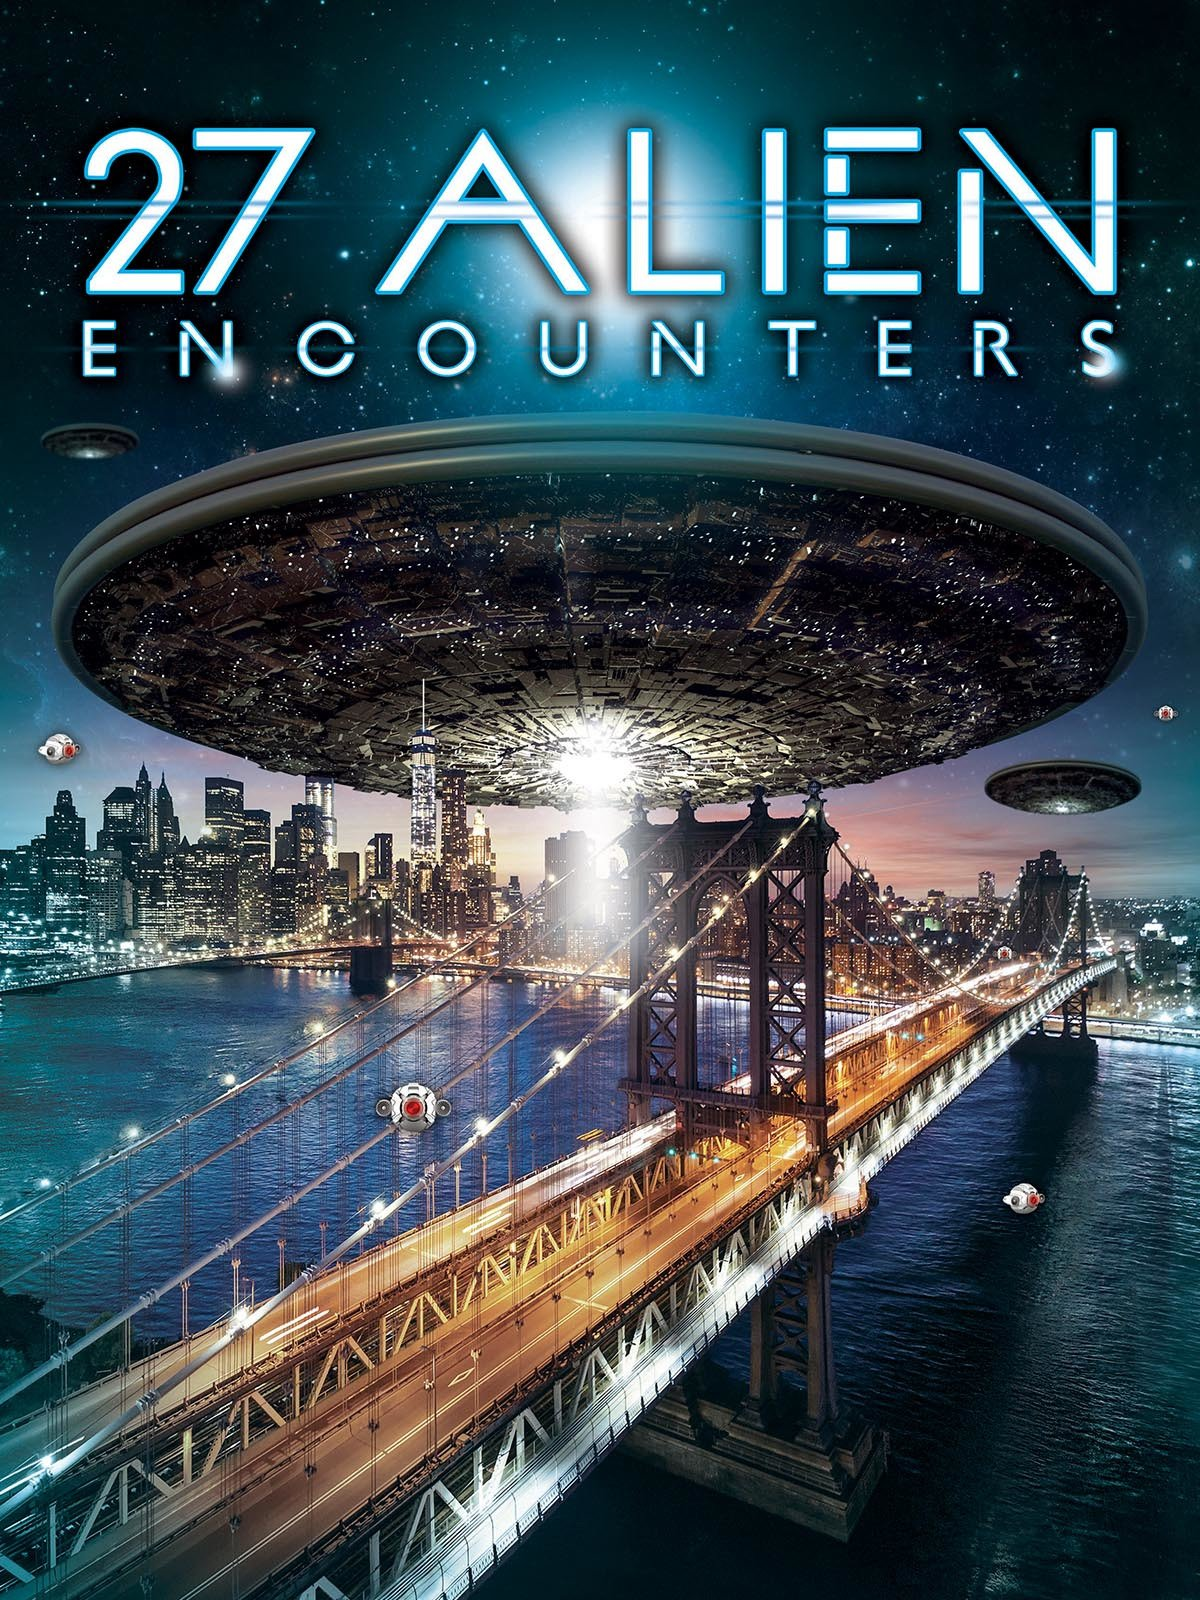 27 Alien Encounters